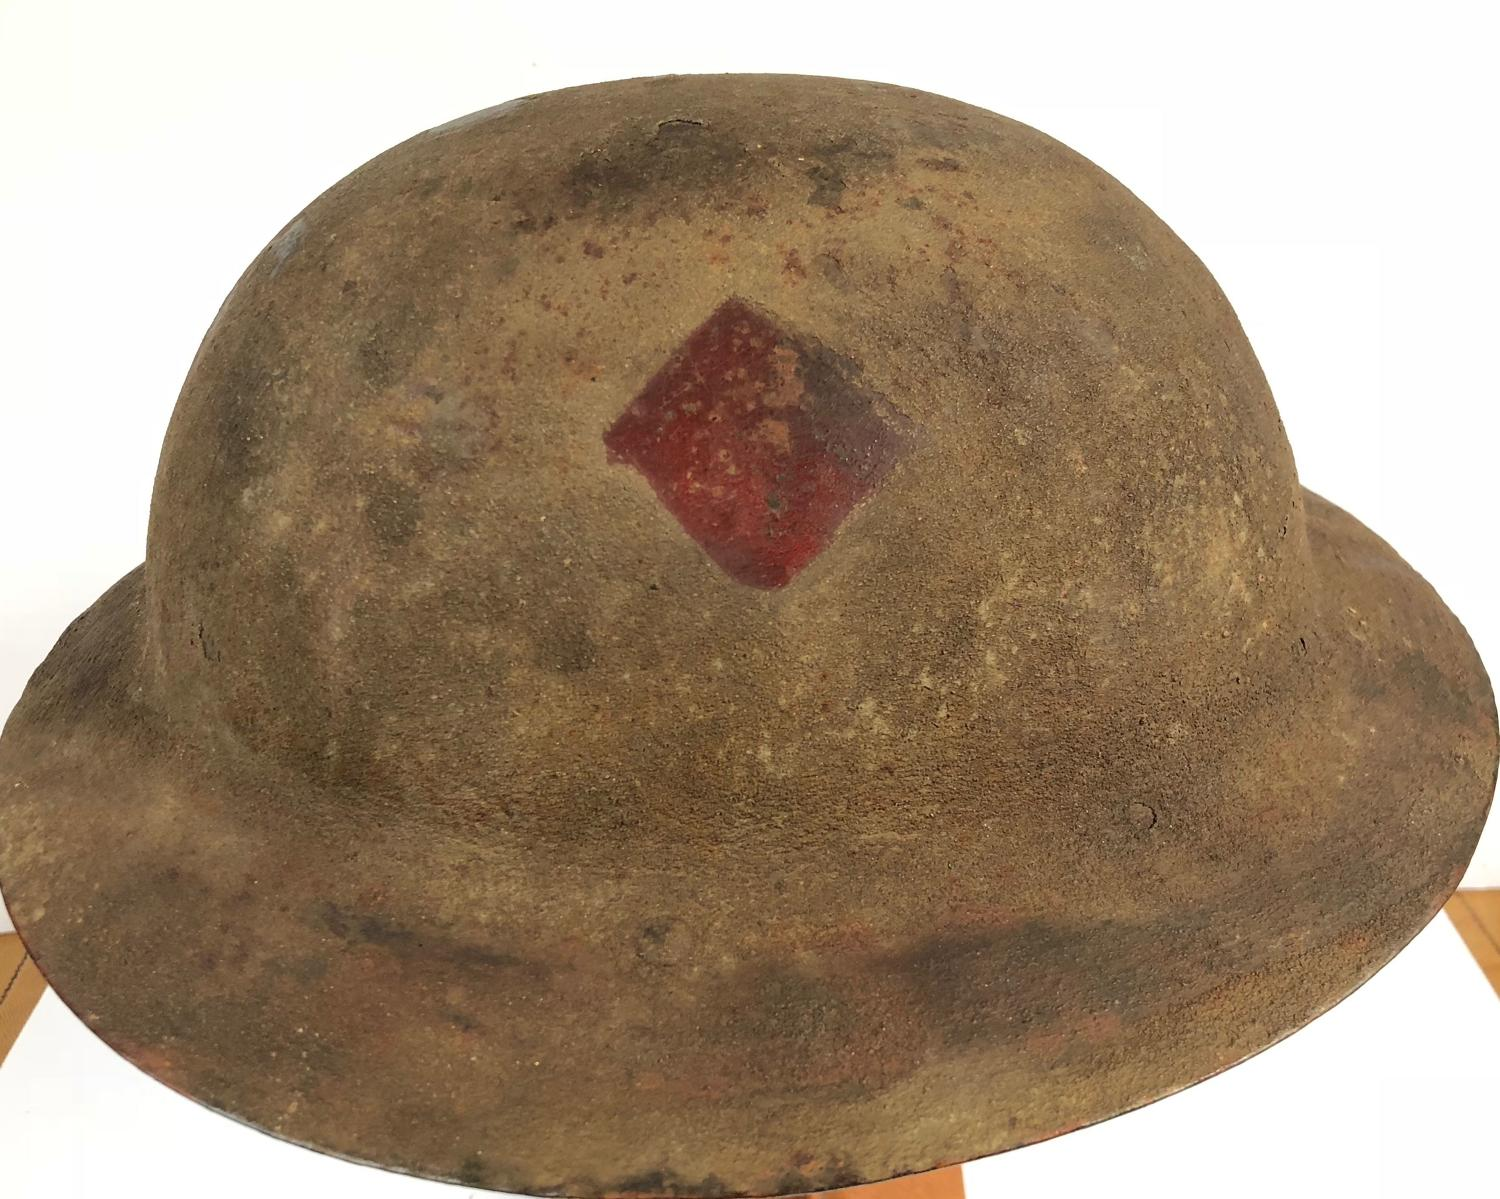 WW1 Battle of the Somme Period Brodie Steel Helmet Circa 1916.